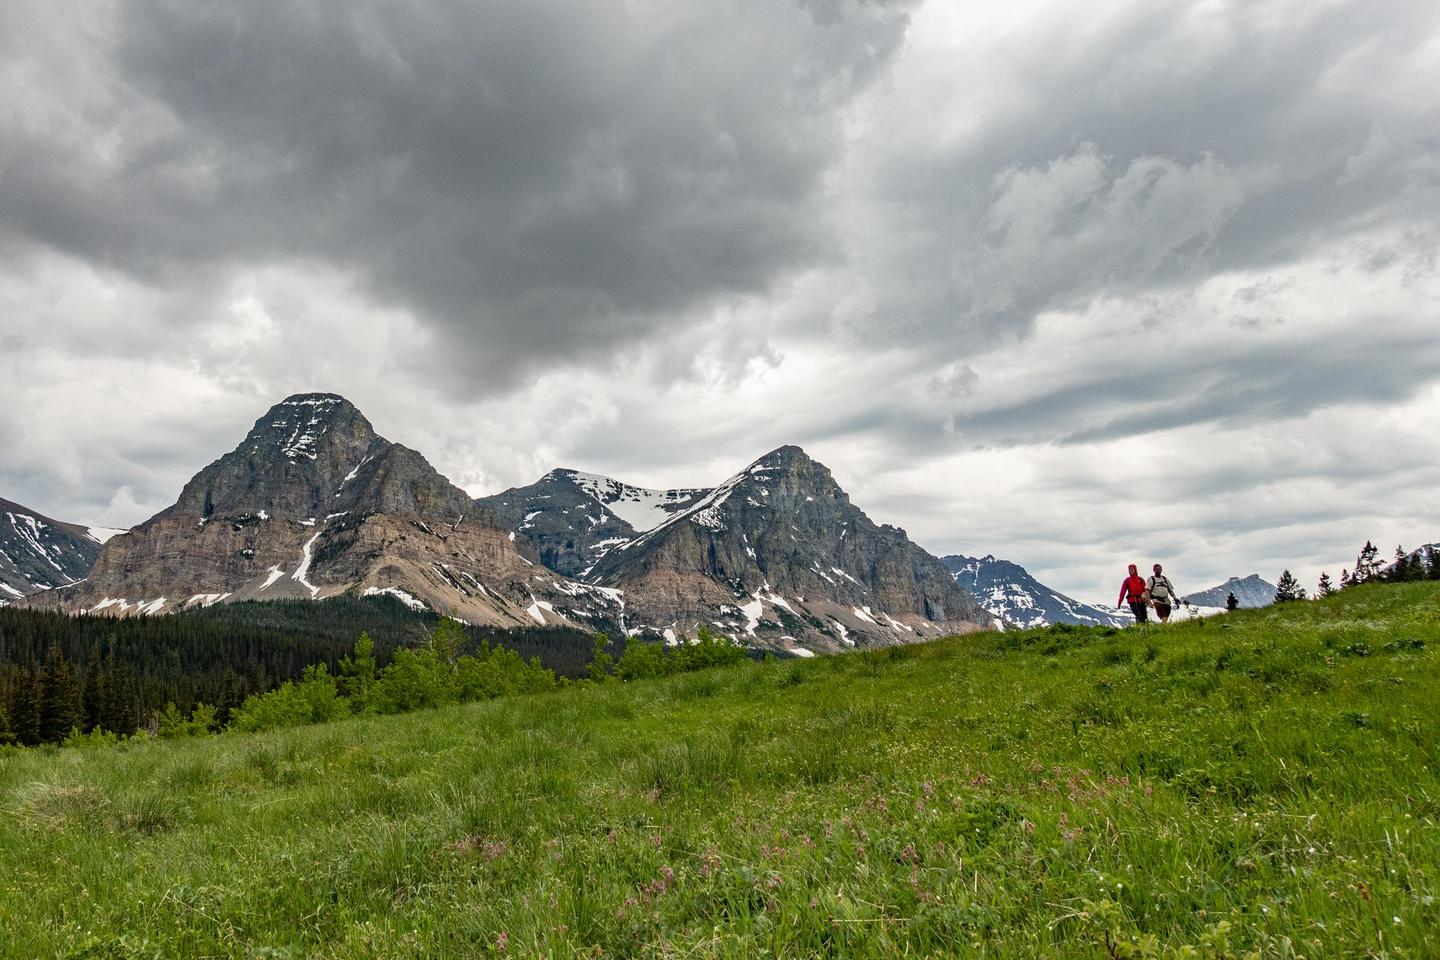 Hiking in Cut BankTwo people walk down a trail near the Cutbank Campground under cloudy skies. Rocky snow capped peaks rise in the background and the foreground is filled with thick grass.